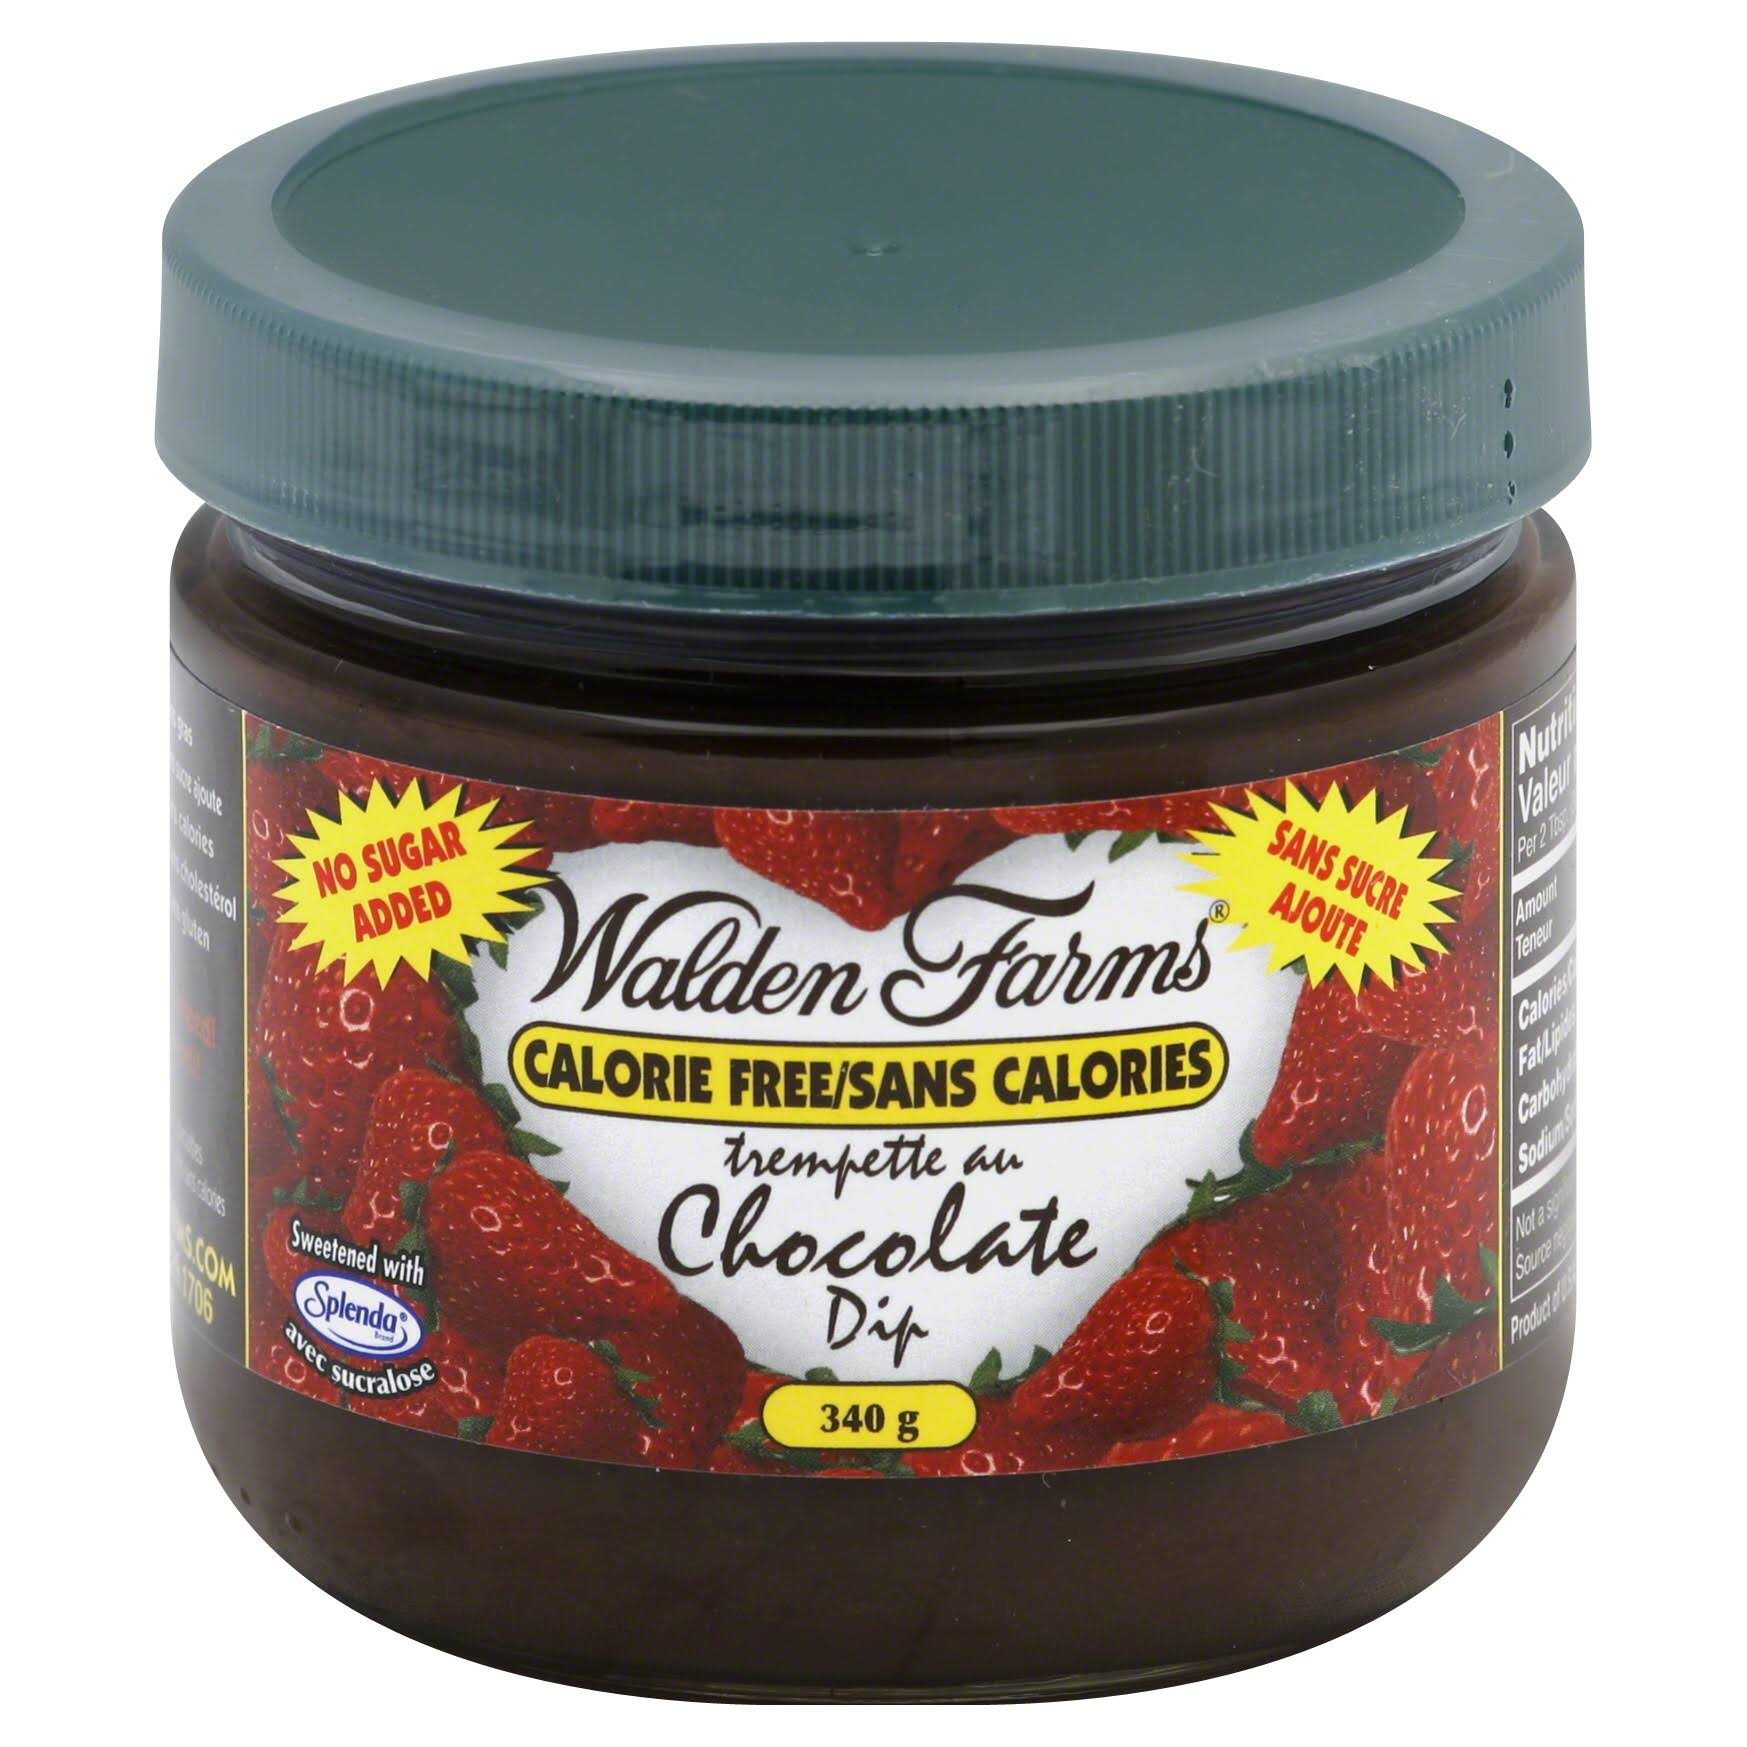 Walden Farms Calorie Free Dessert Dip, Chocolate - 12 oz jar